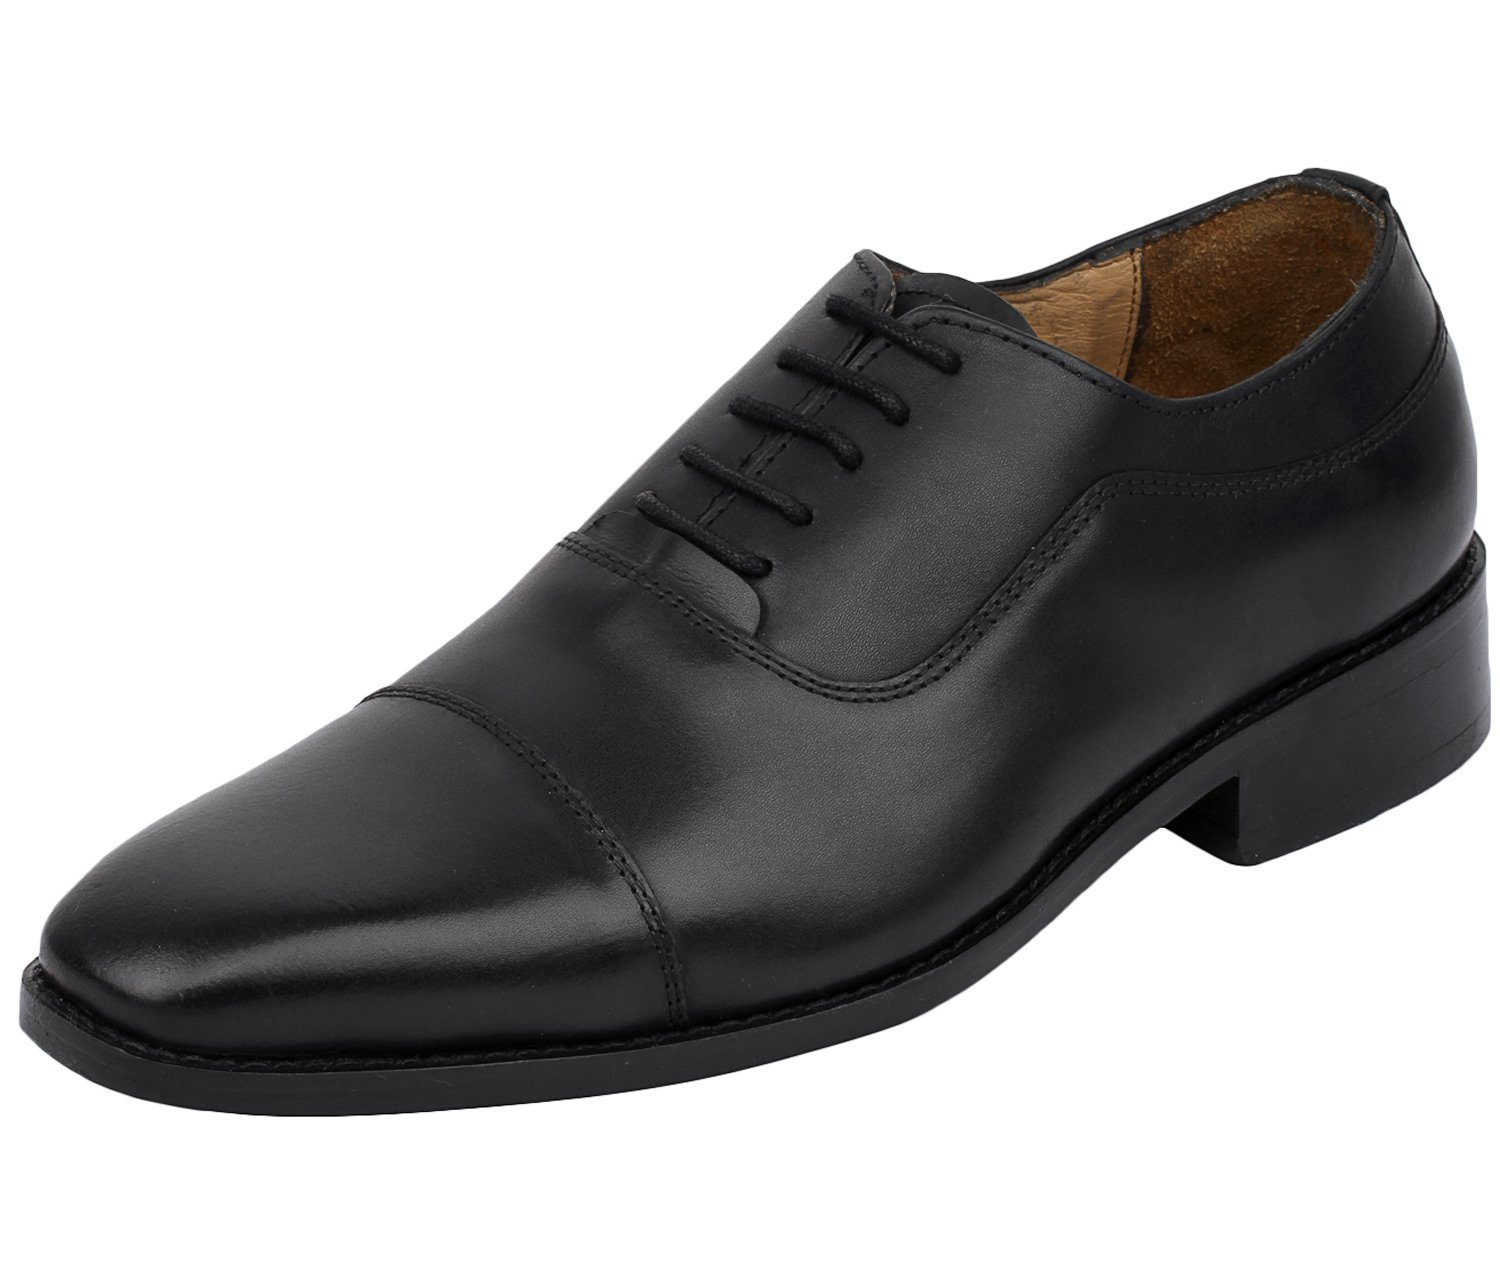 Lethato Handcrafted Men's Captoe Genuine Leather Lace Up Oxford Dress Shoes- Black